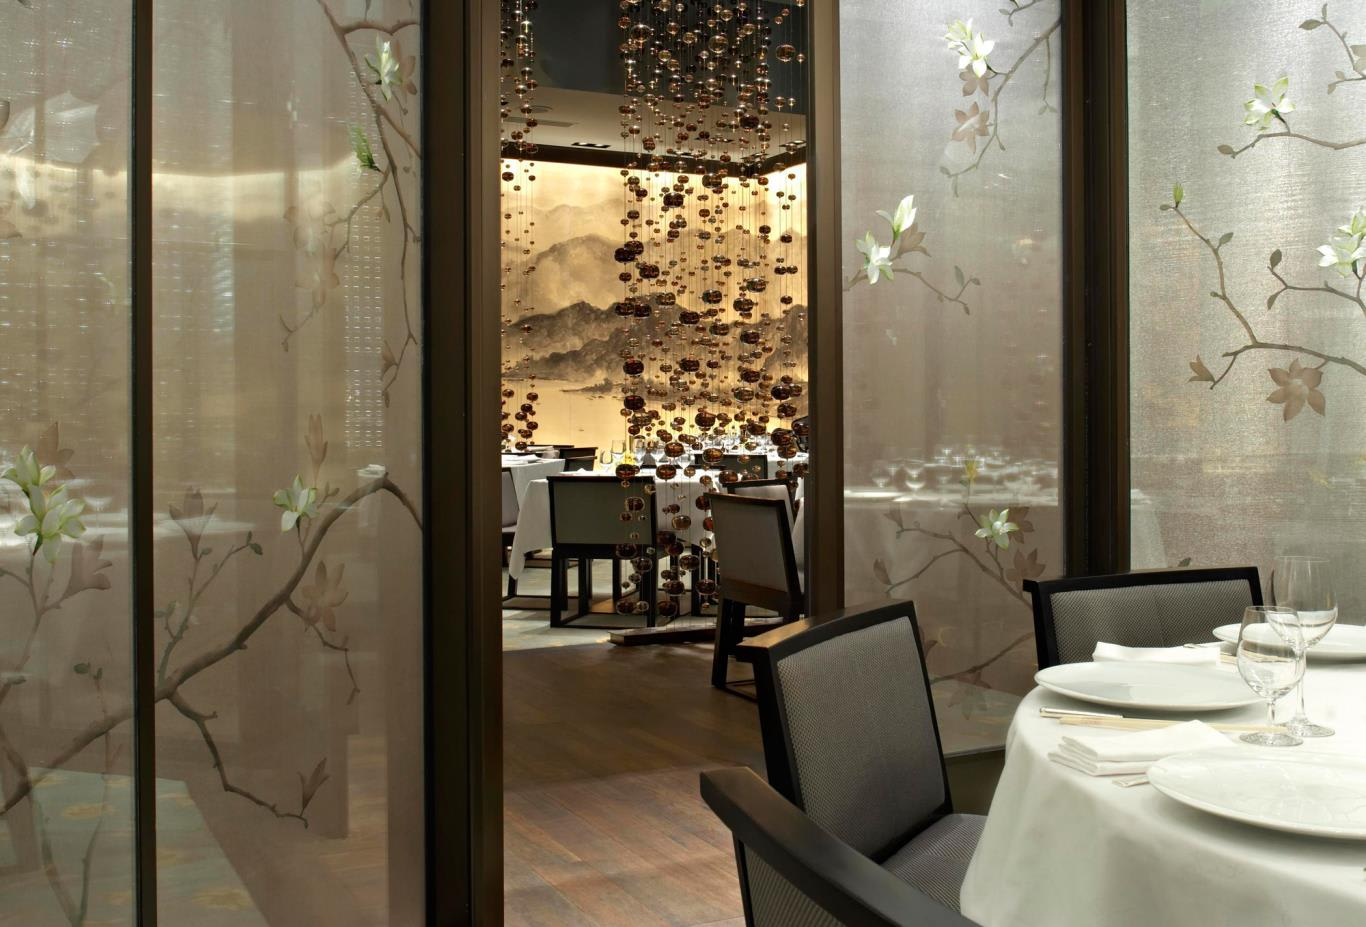 The Mirage Fin Private Dining Room with Table